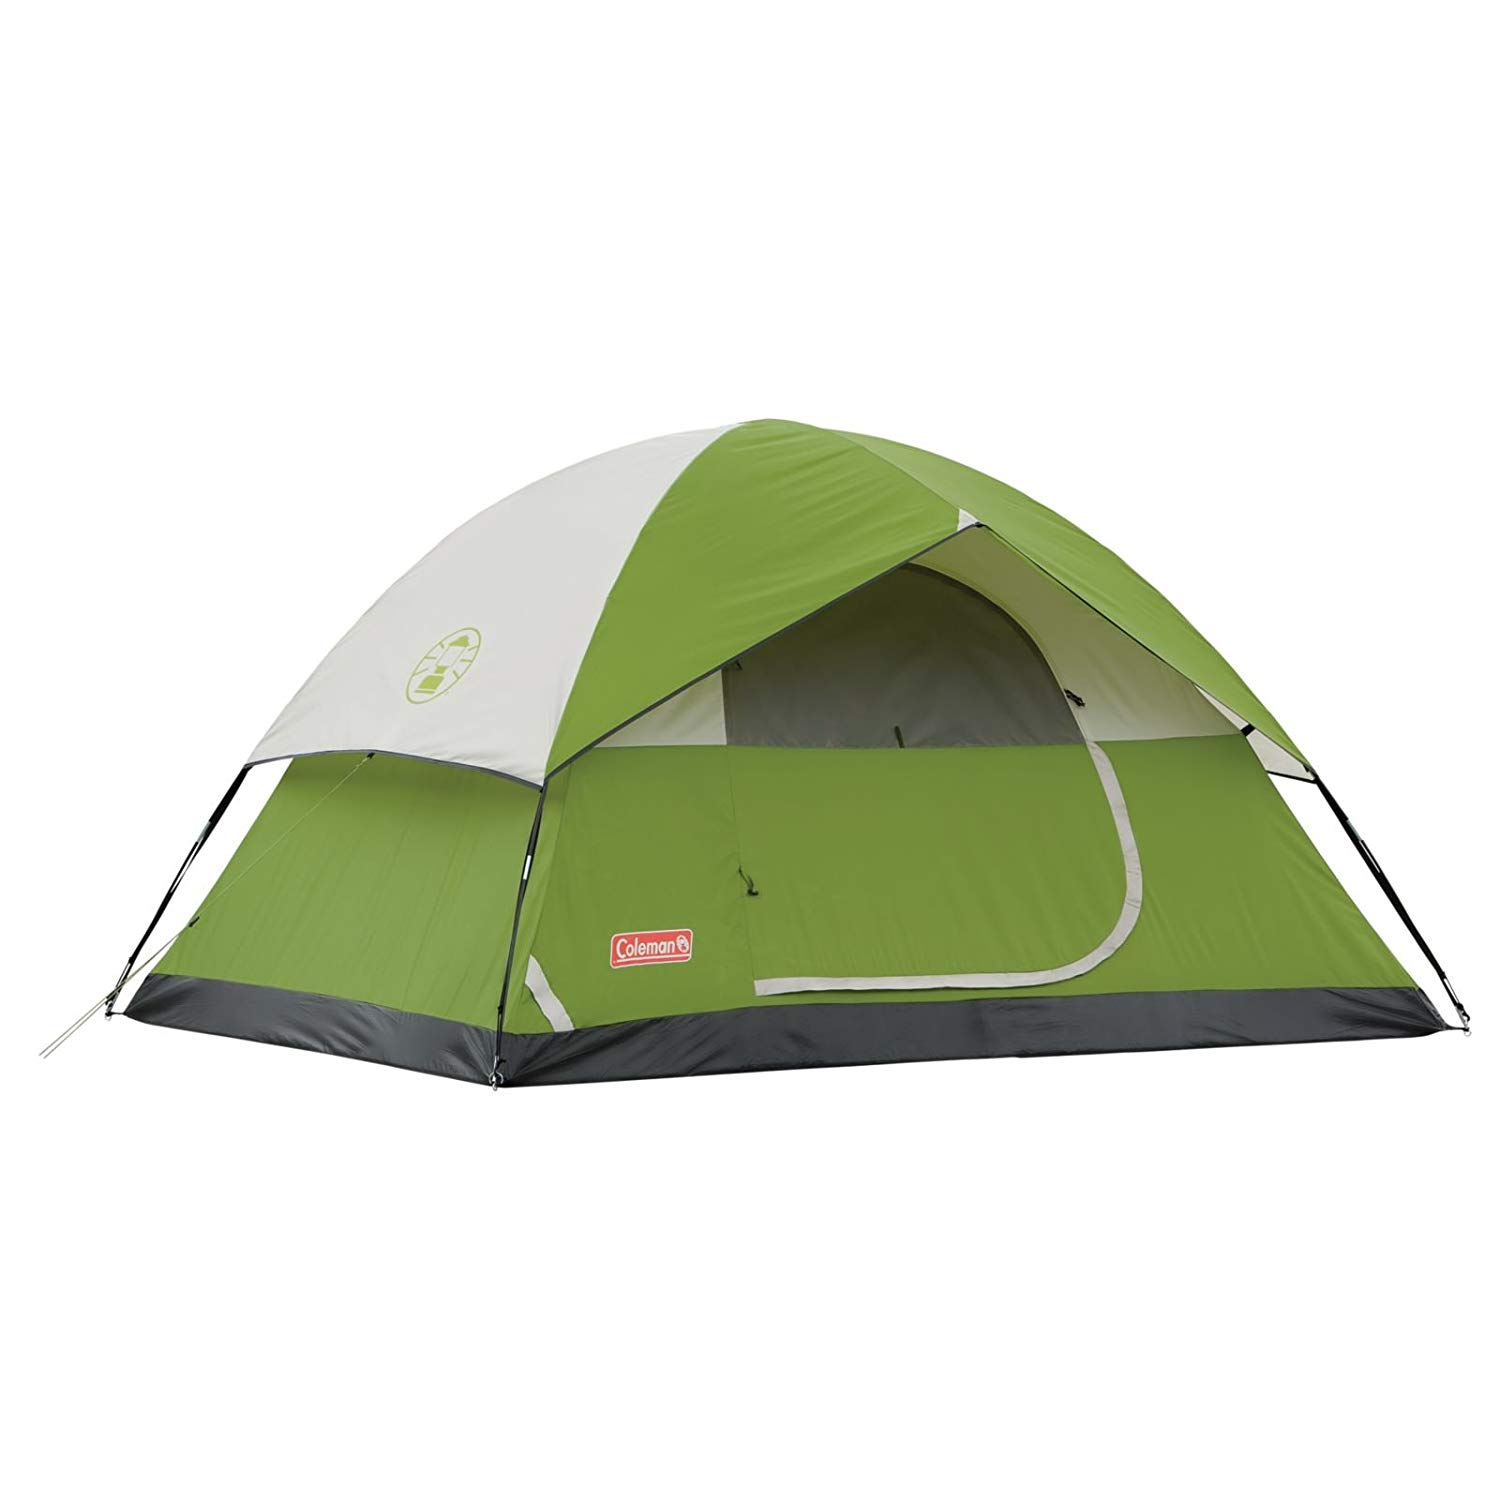 Coleman Sundome best camping gear